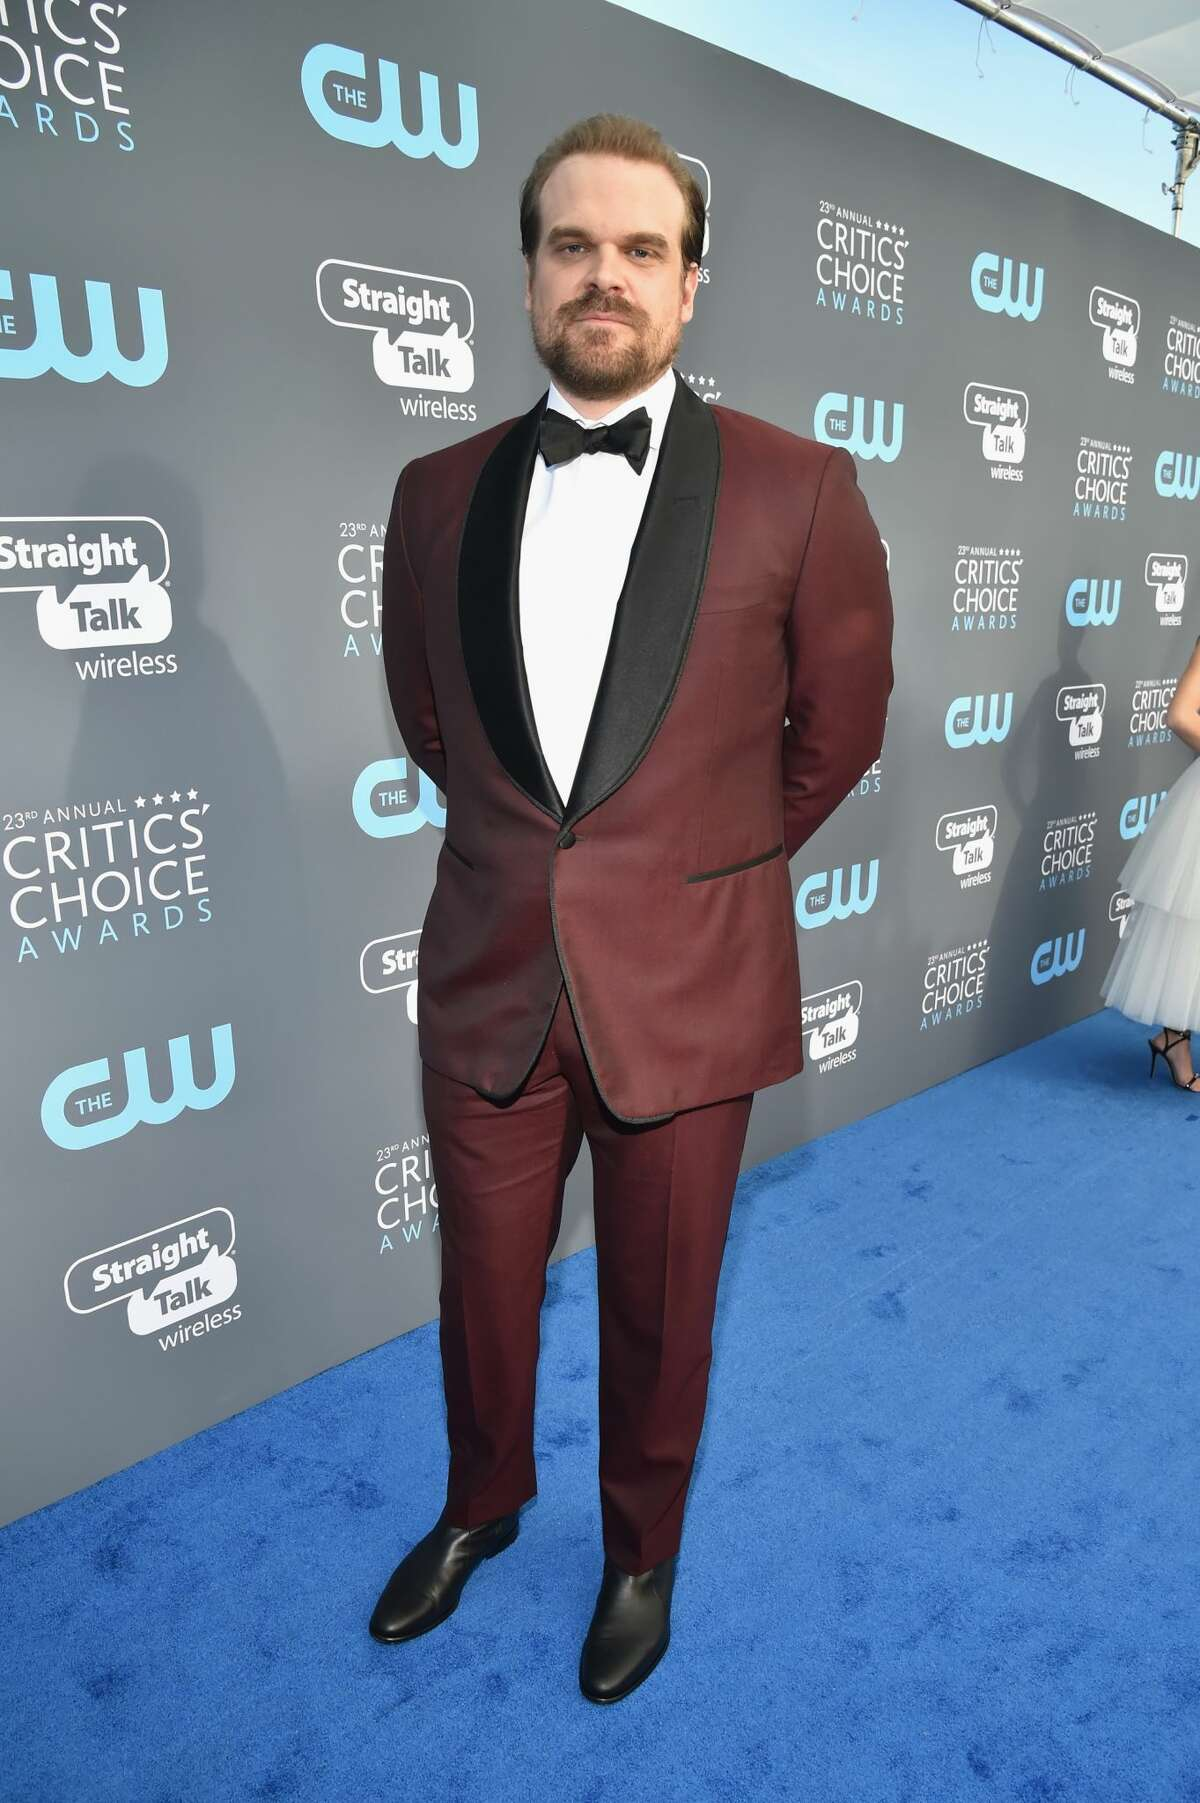 Actor David Harbour attends The 23rd Annual Critics' Choice Awards at Barker Hangar on January 11, 2018 in Santa Monica, California. (Photo by Kevin Mazur/WireImage)